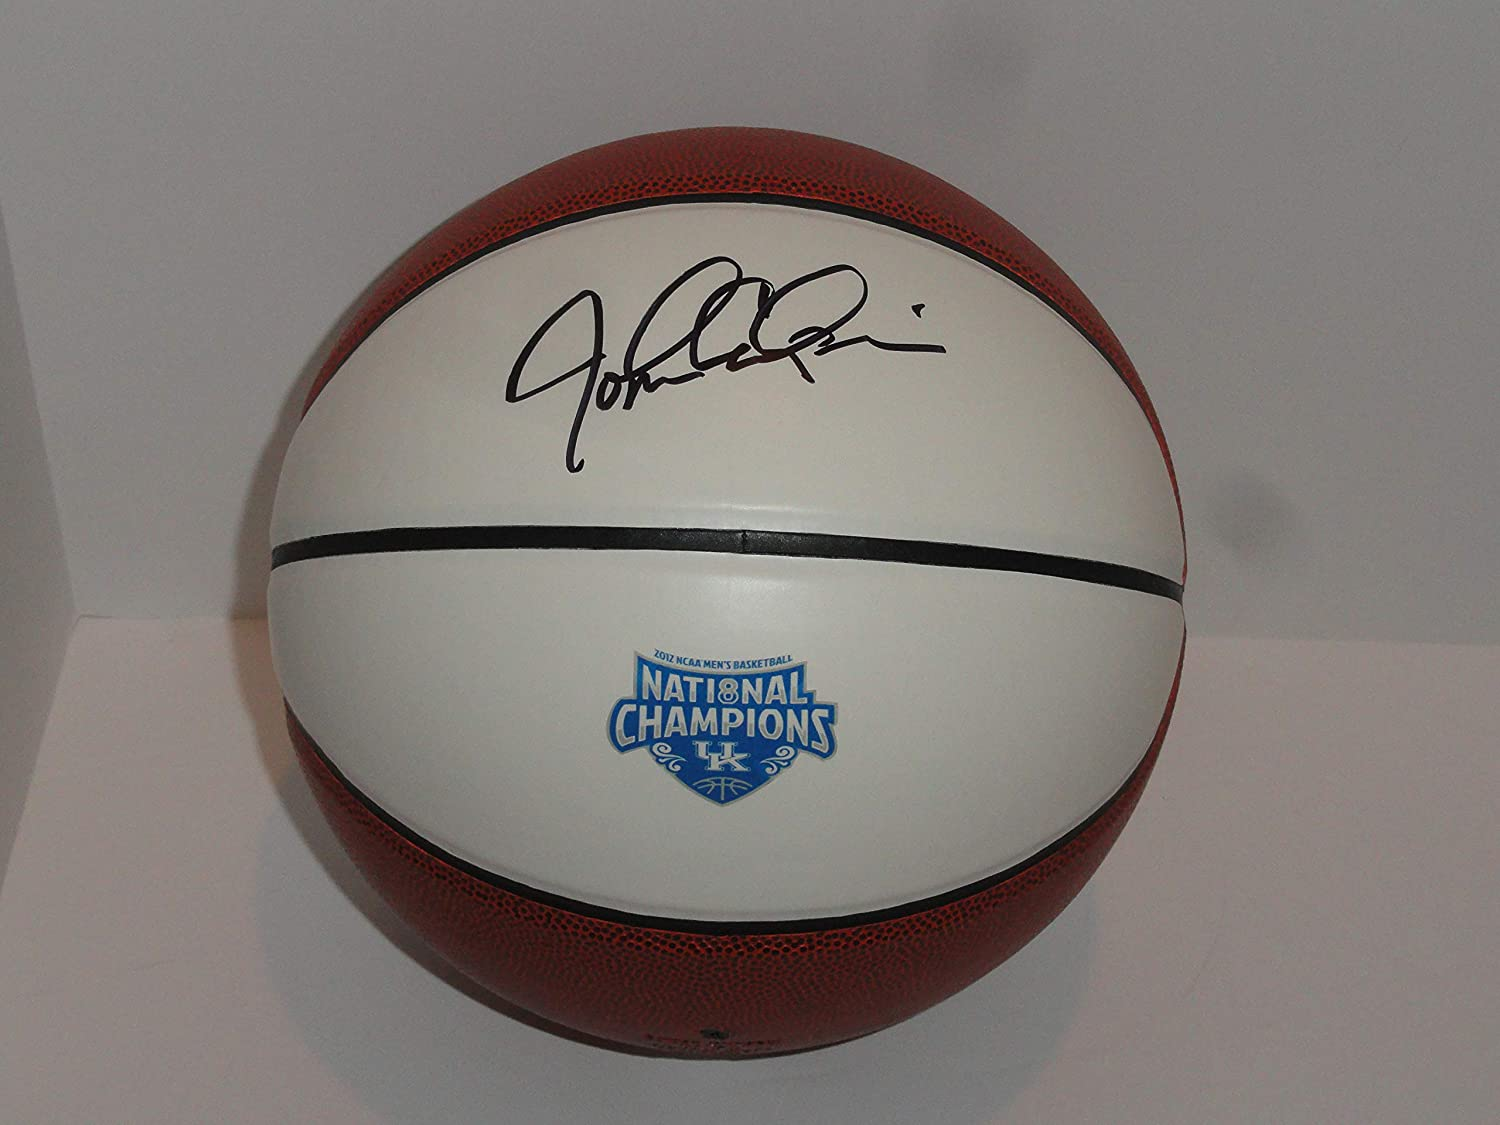 JOHN CALIPARI SIGNED BASKETBALL KENTUCKY WILDCATS 2012 NATIONAL CHAMPIONS PROOF